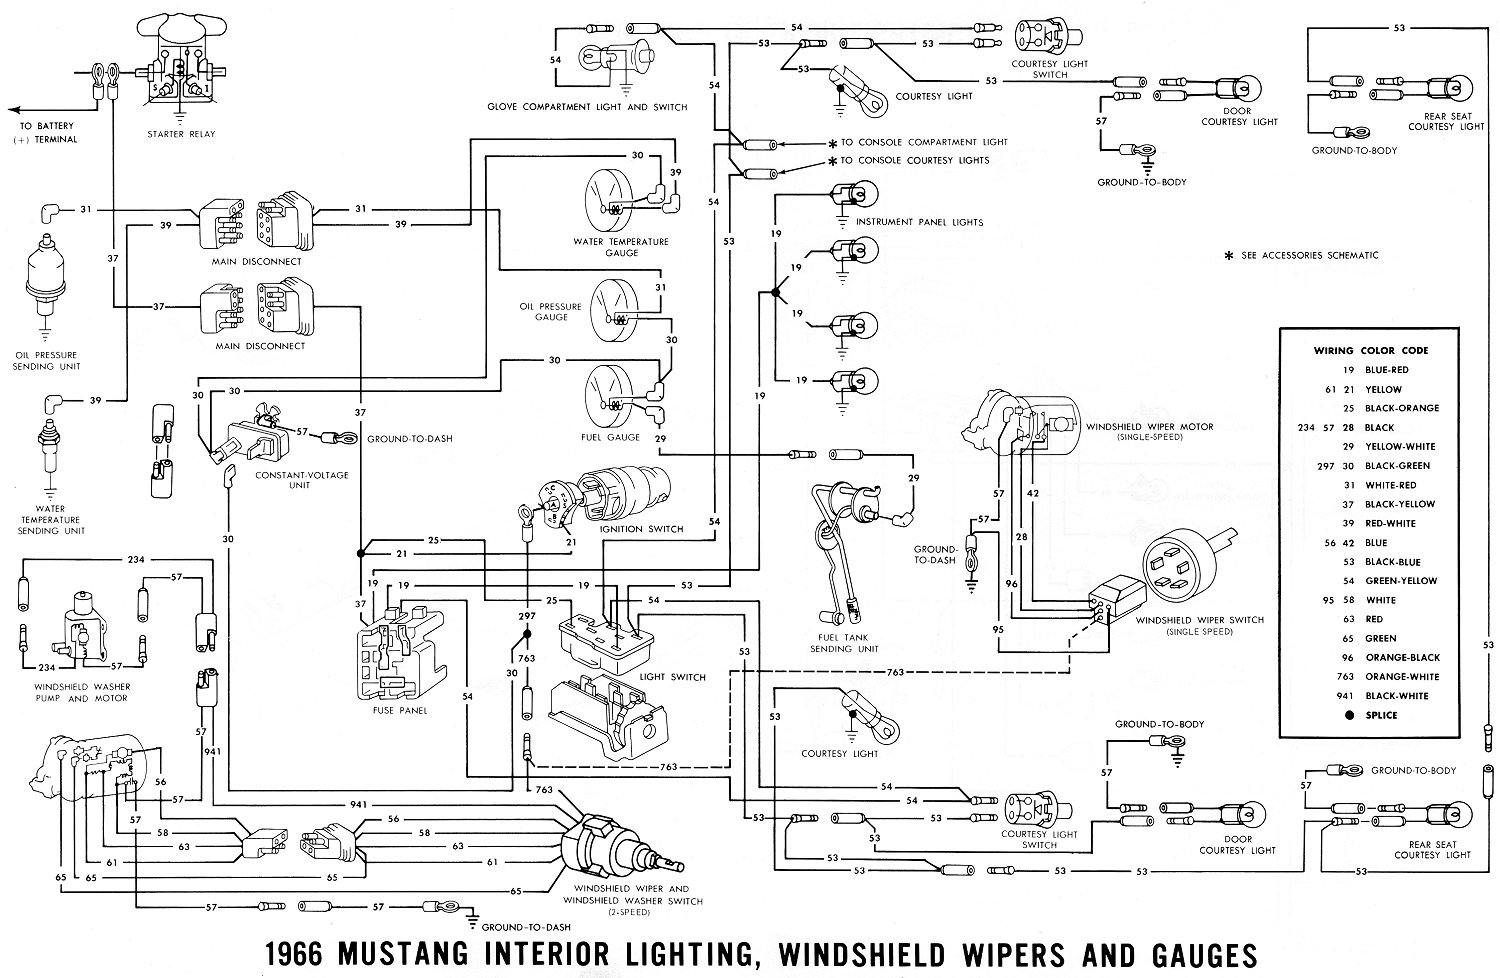 66inter1 1966 mustang fuse box diagram 1968 mustang fuse box location 1970 mustang fuse box diagram at reclaimingppi.co